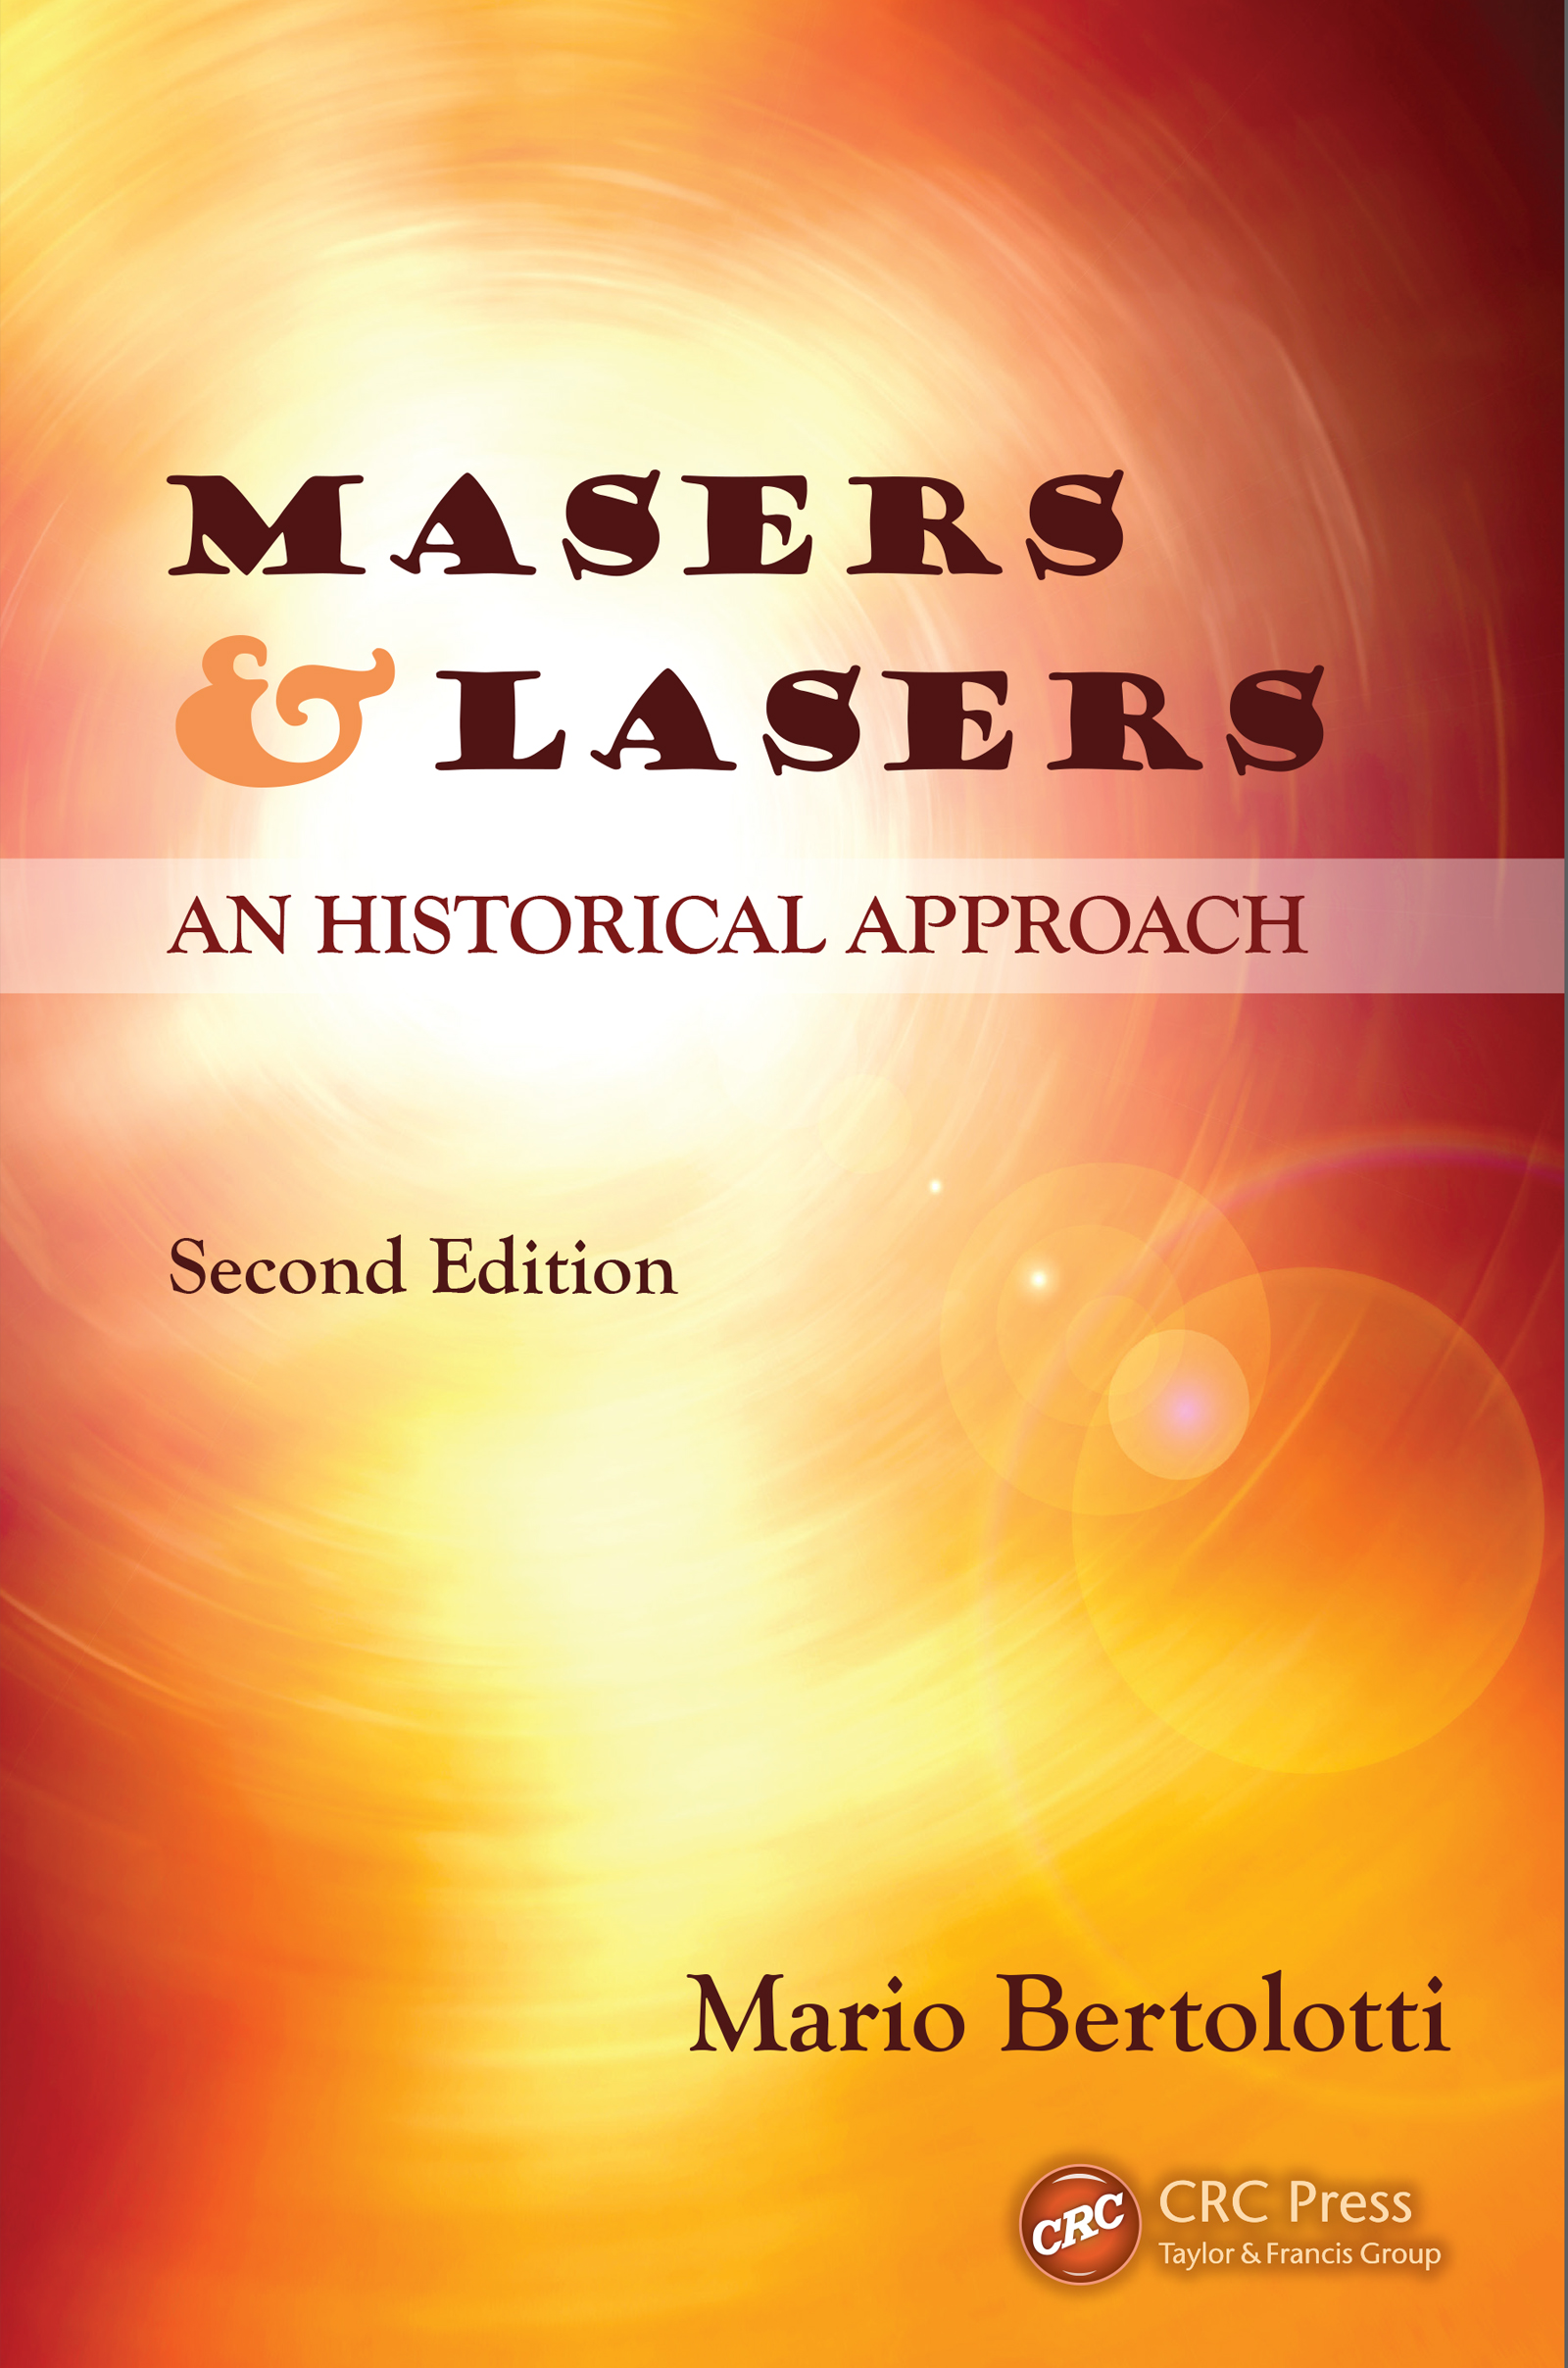 Masers and Lasers